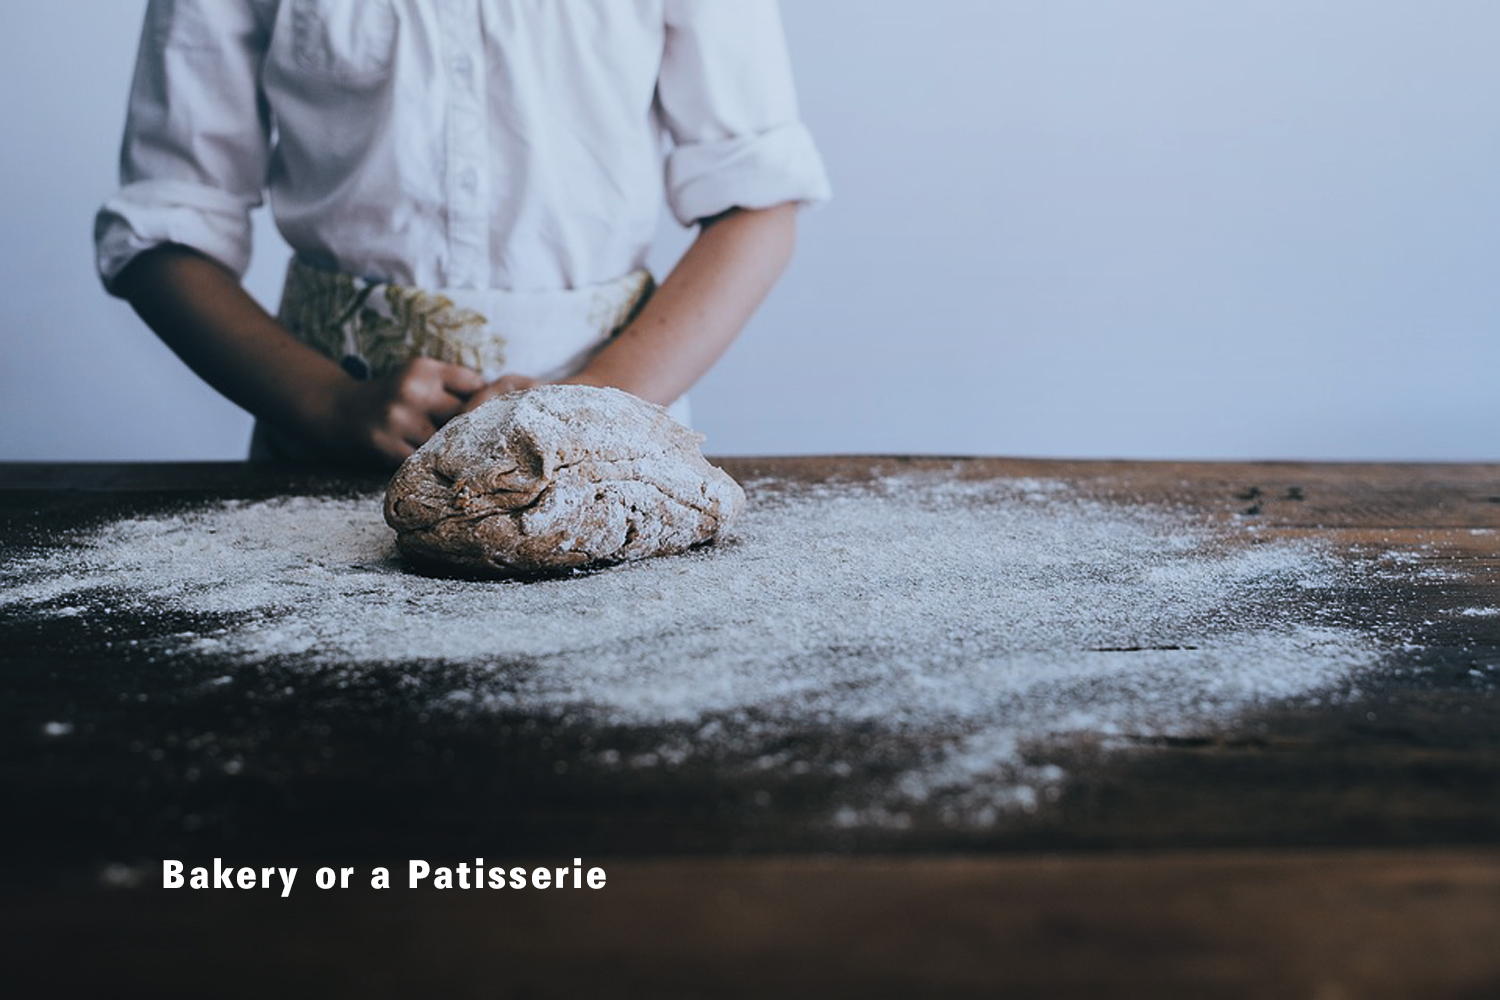 bakery or a patisserie